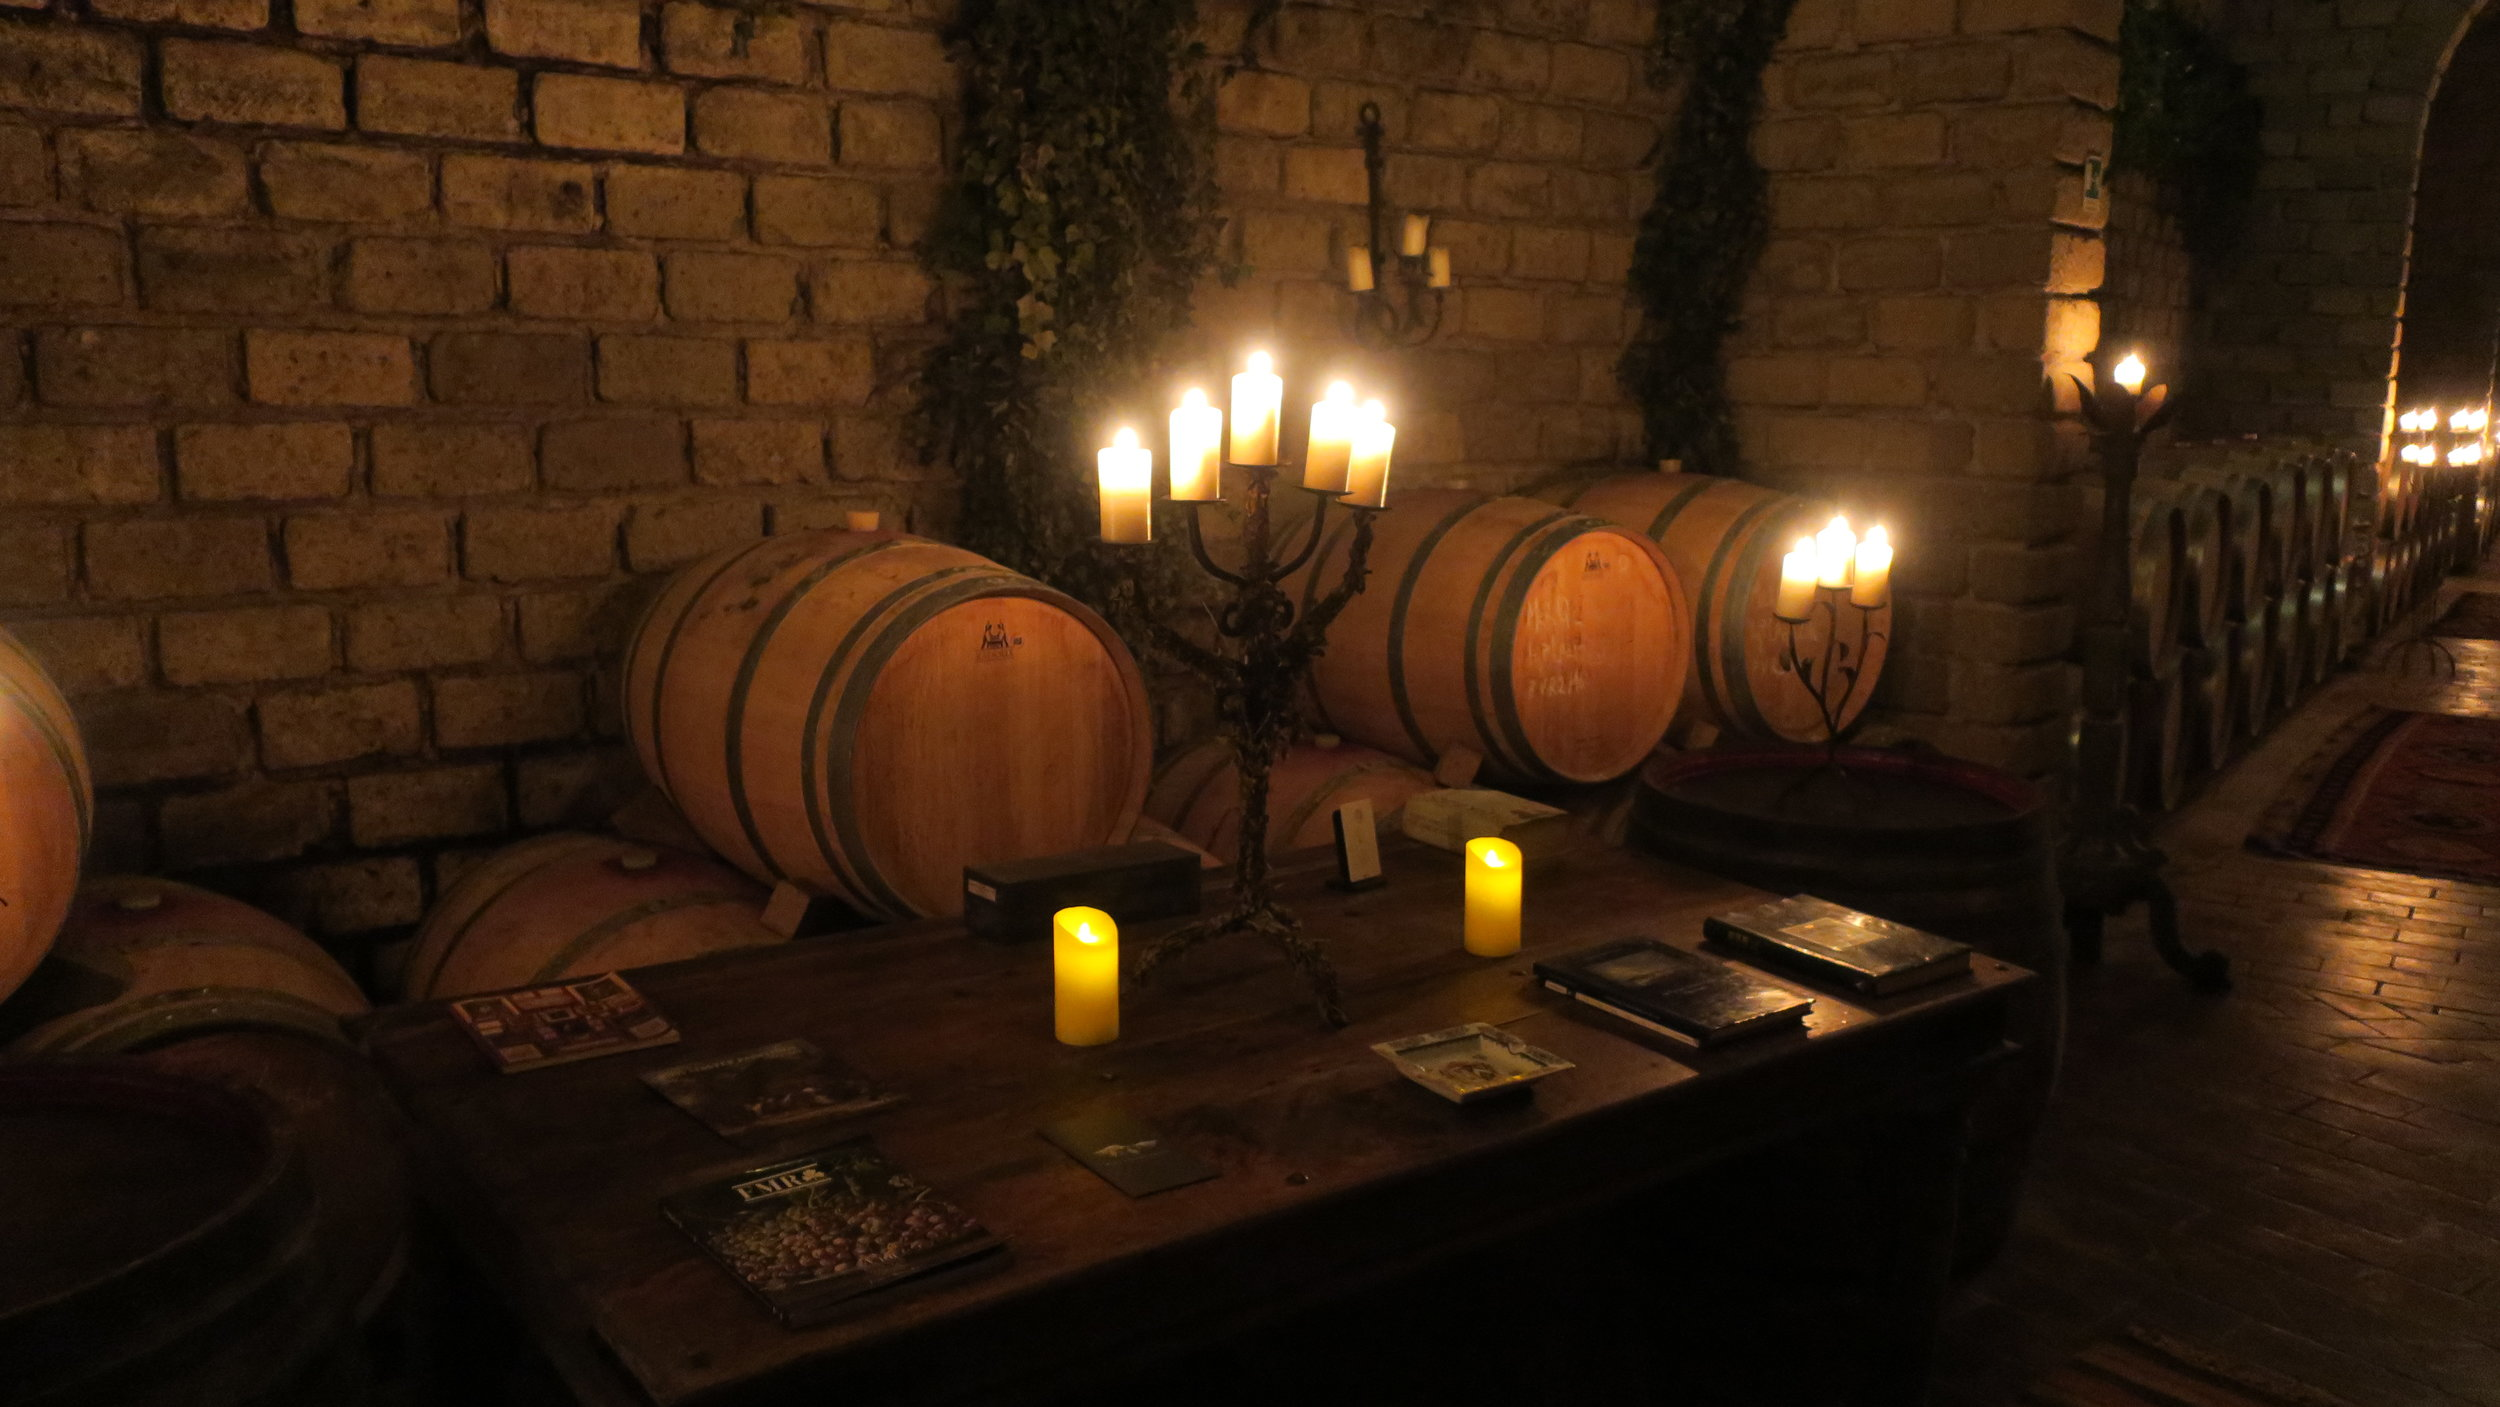 French Barrels resting in D'Amico Wine cellar that has been carved into Tufa rocks (Photo credit: Sumi_Sumilier)